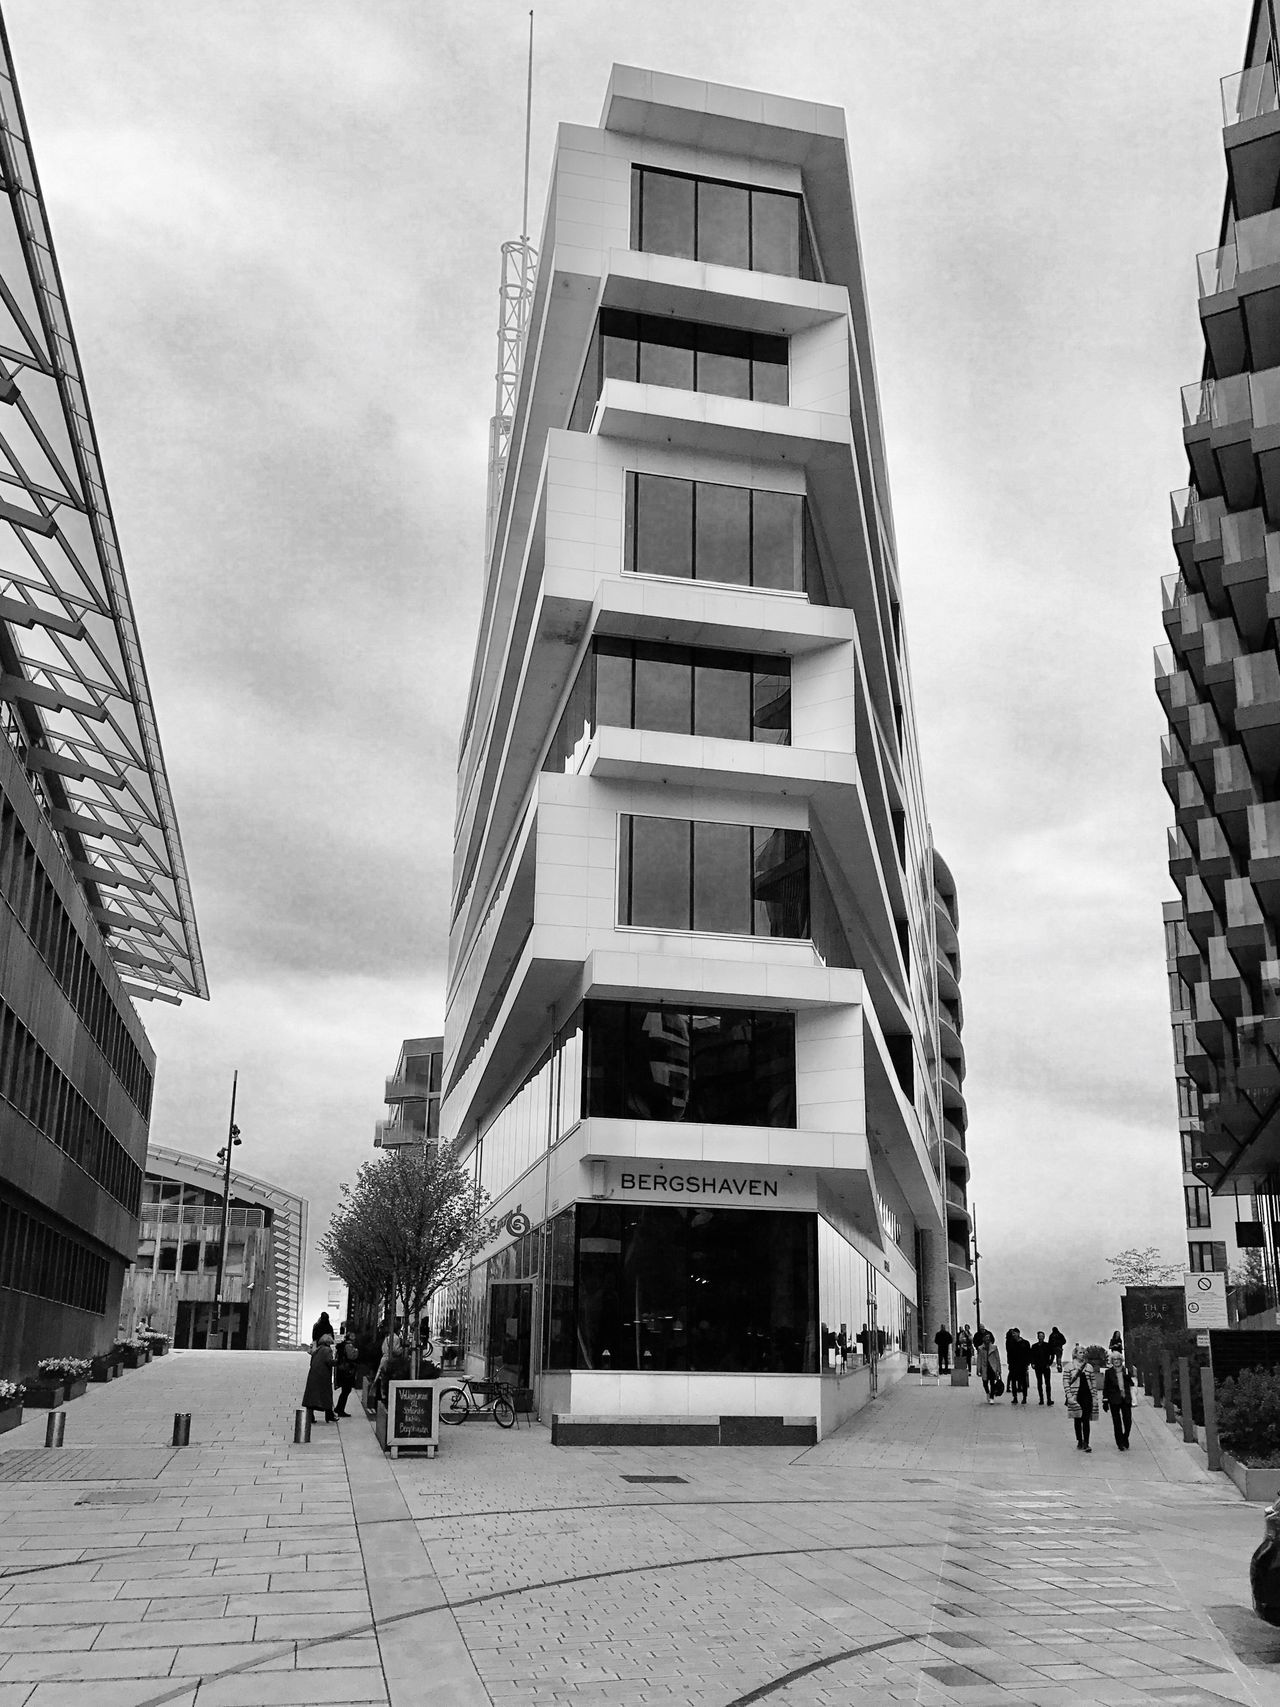 The Architect - 2017 EyeEm Awards Oslo Aker Brygge Architecture Built Structure Building Exterior Walking Sky Modern City Day Real People Men Skyscraper Low Angle View Outdoors Large Group Of People People Adult Adults Only Bnwlovers Bnw